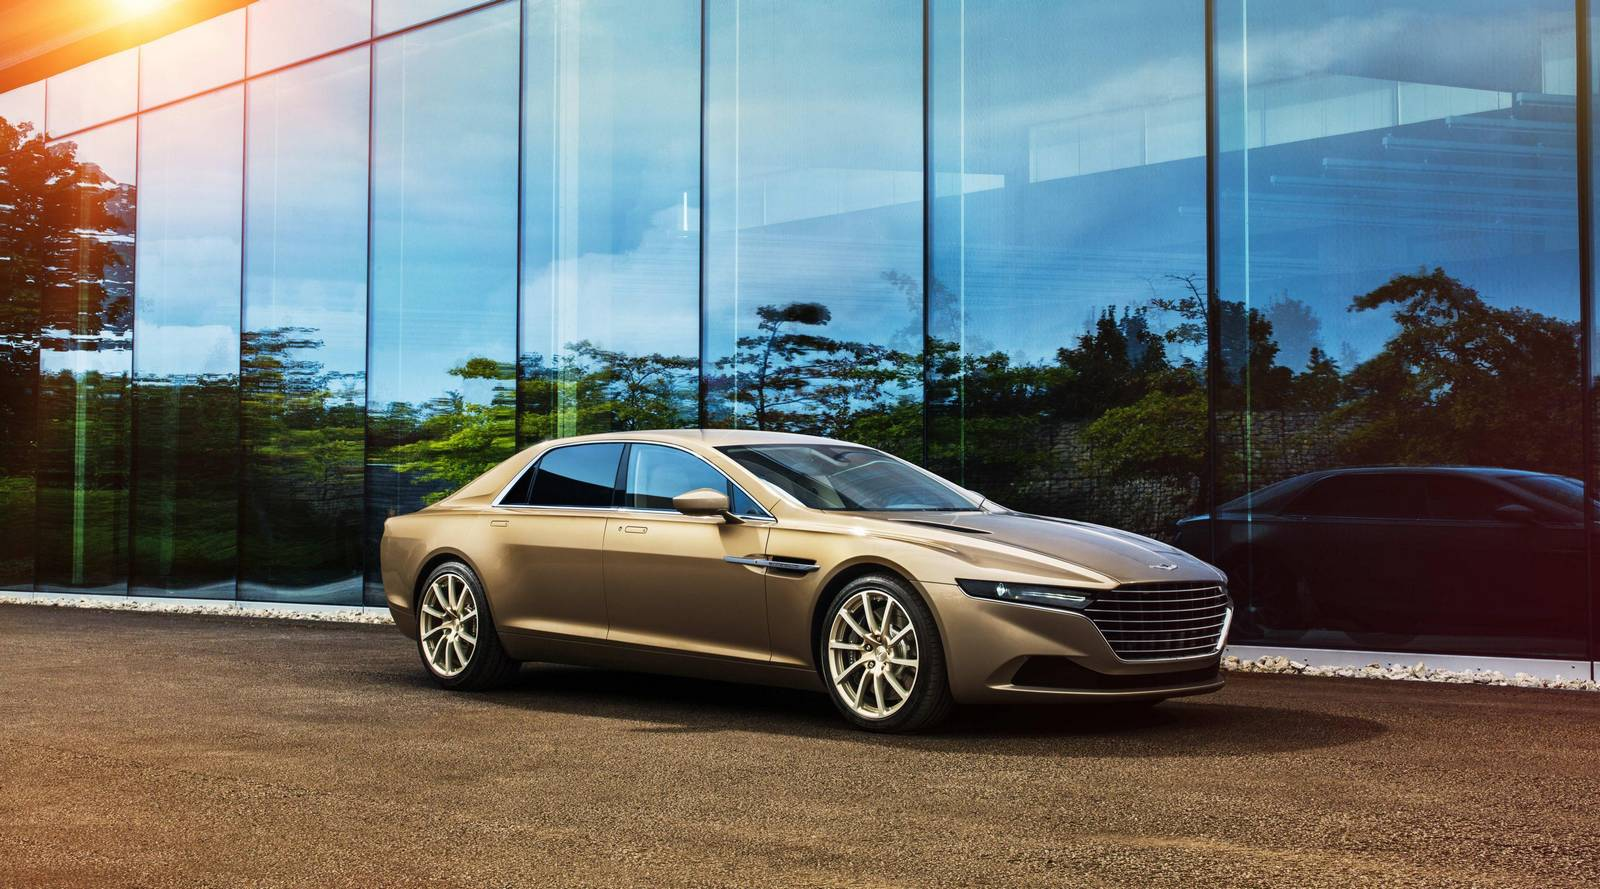 Lagonda Taraf To Lead Aston Martin Lineup At Goodwood GTspirit - Aston martin lineup